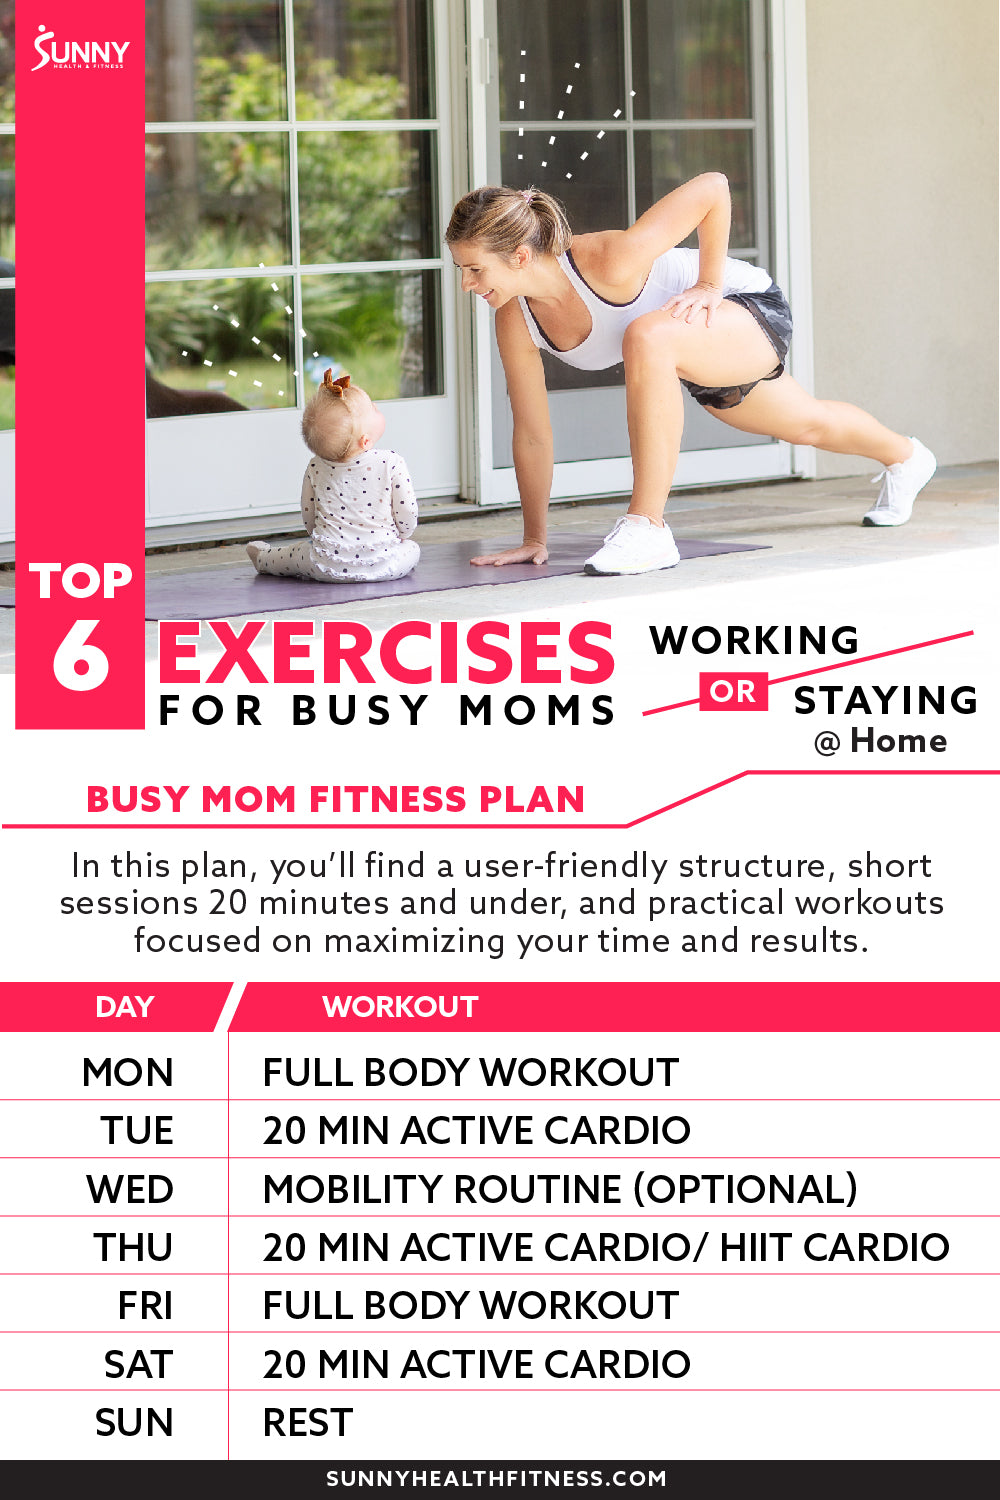 Top 6 Exercises Workout Plan for Busy Mom Schedule